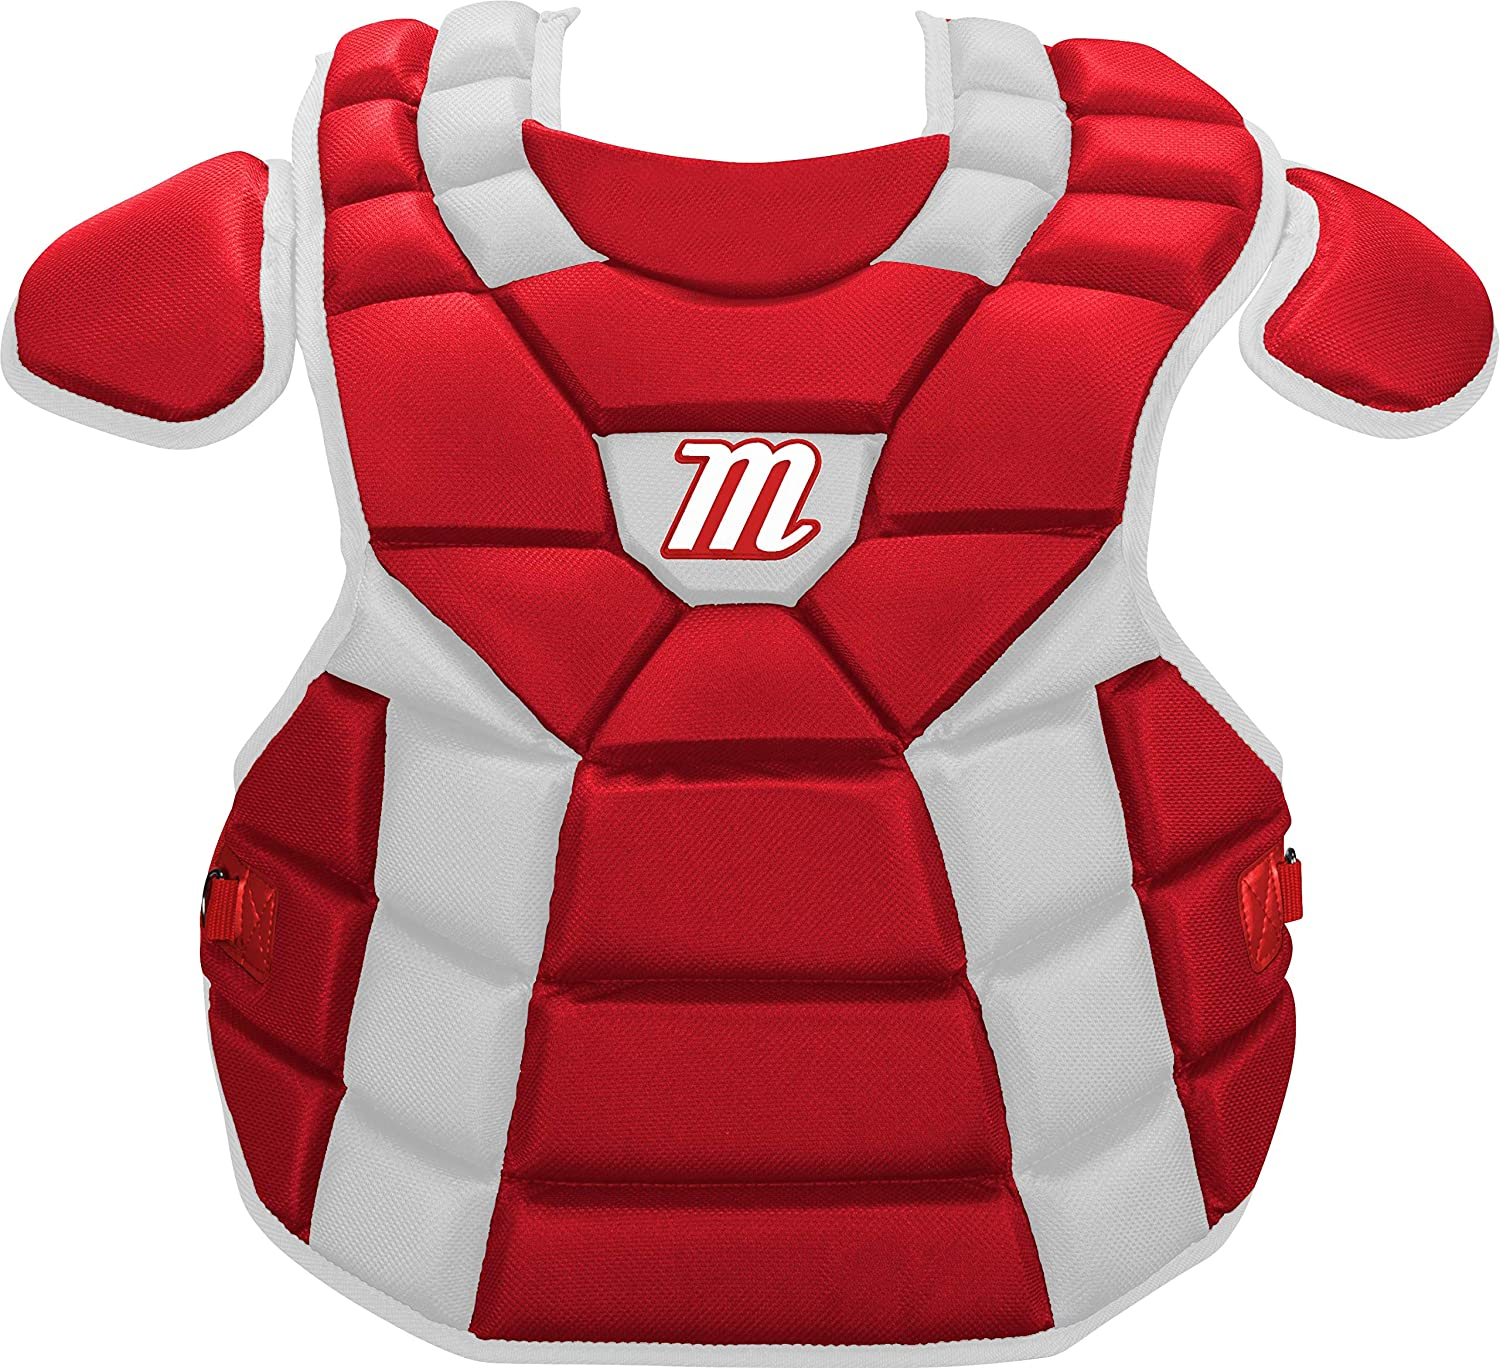 MCGCPM2-R-I Mark 2 Chest Protector Marucci Sports Equipment Sports